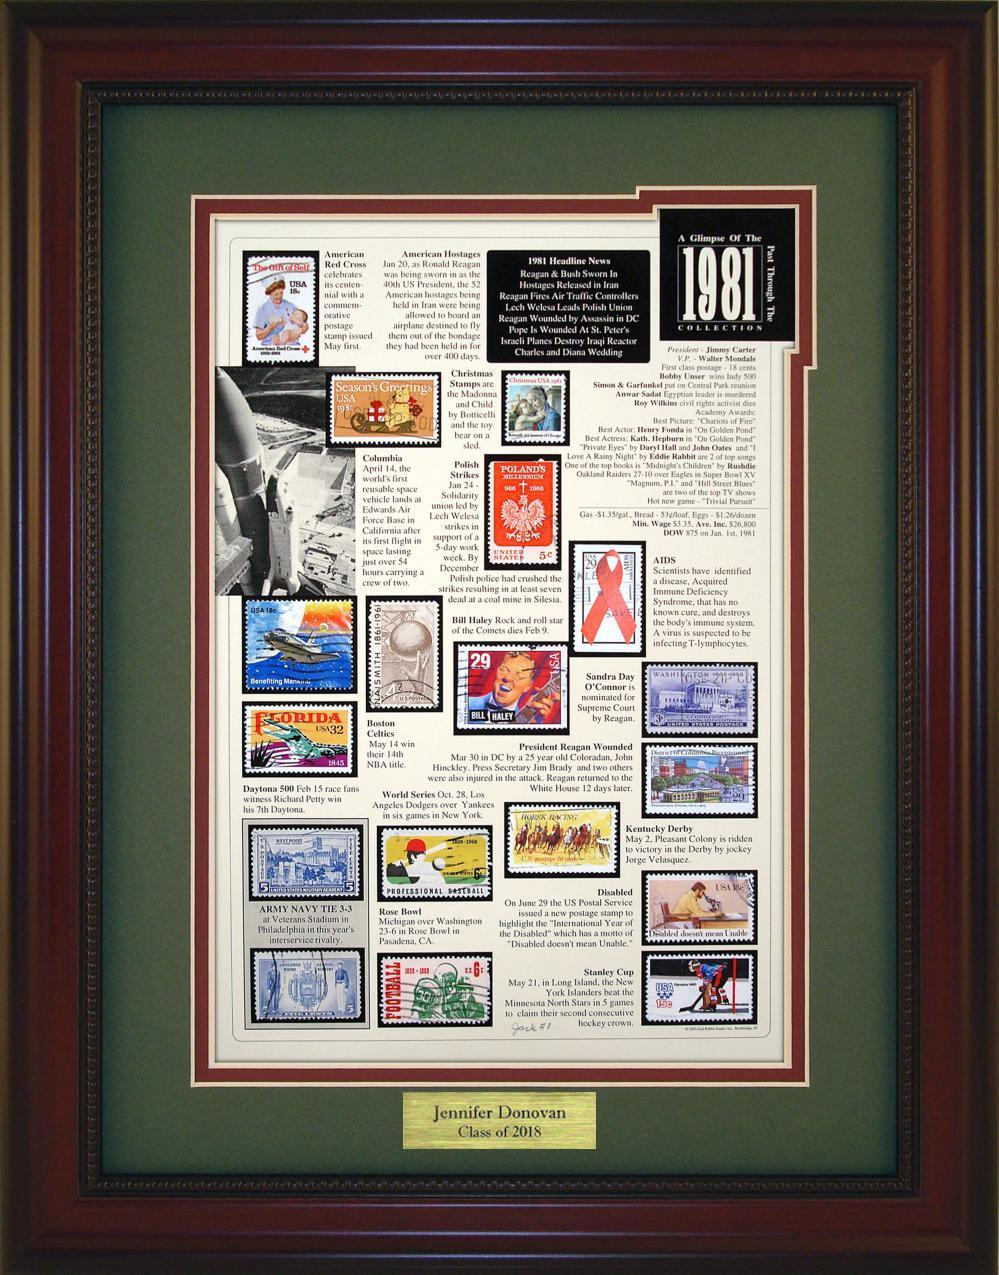 Year 1981 - Personalized Unique Framed Gift